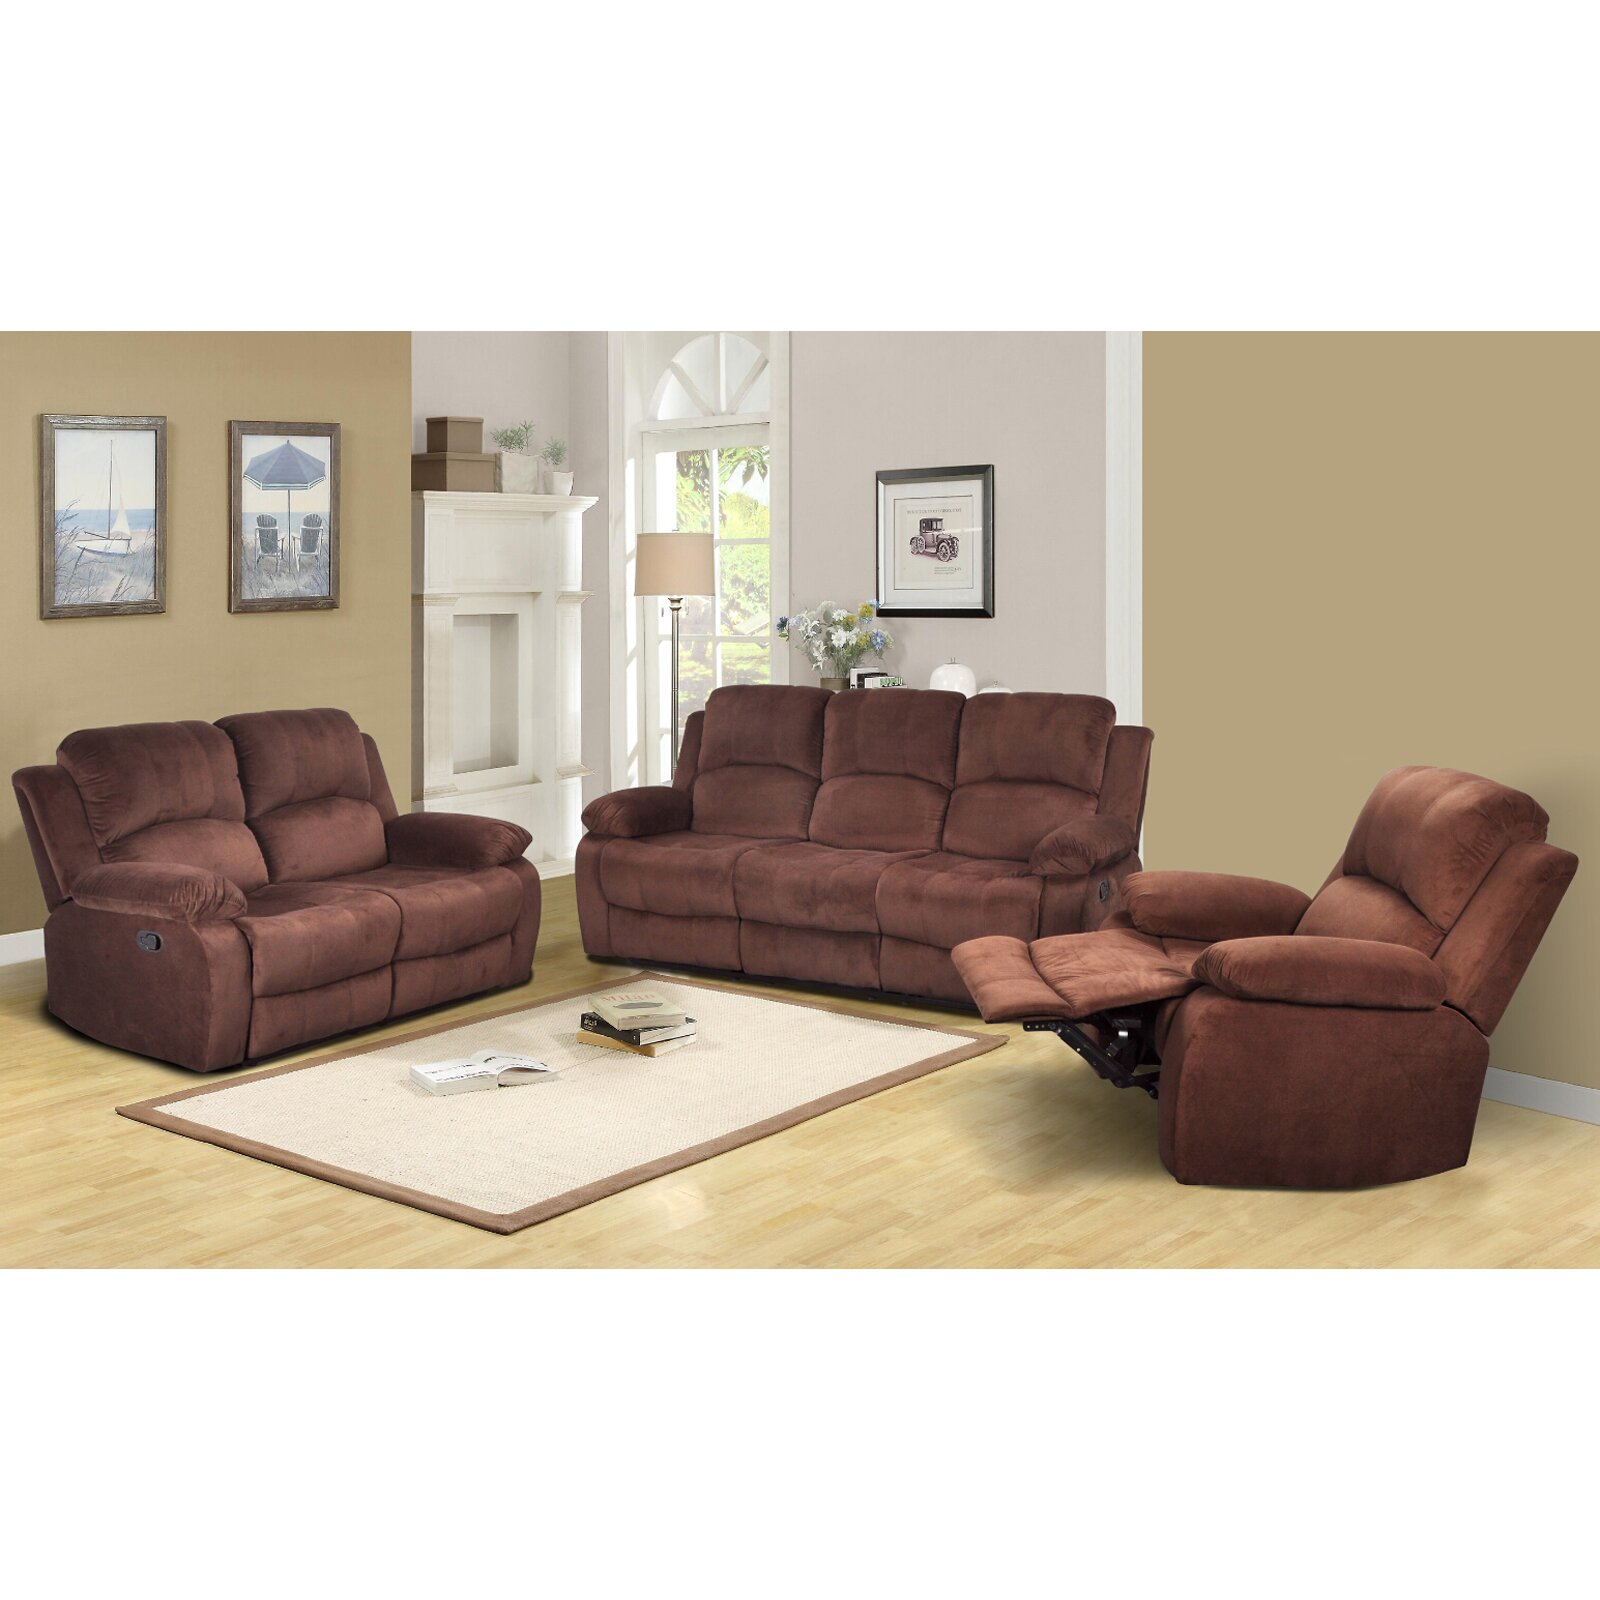 Beverly Fine Furniture Denver 3 Piece Microfiber Reclining Living Room Set Reviews Wayfair